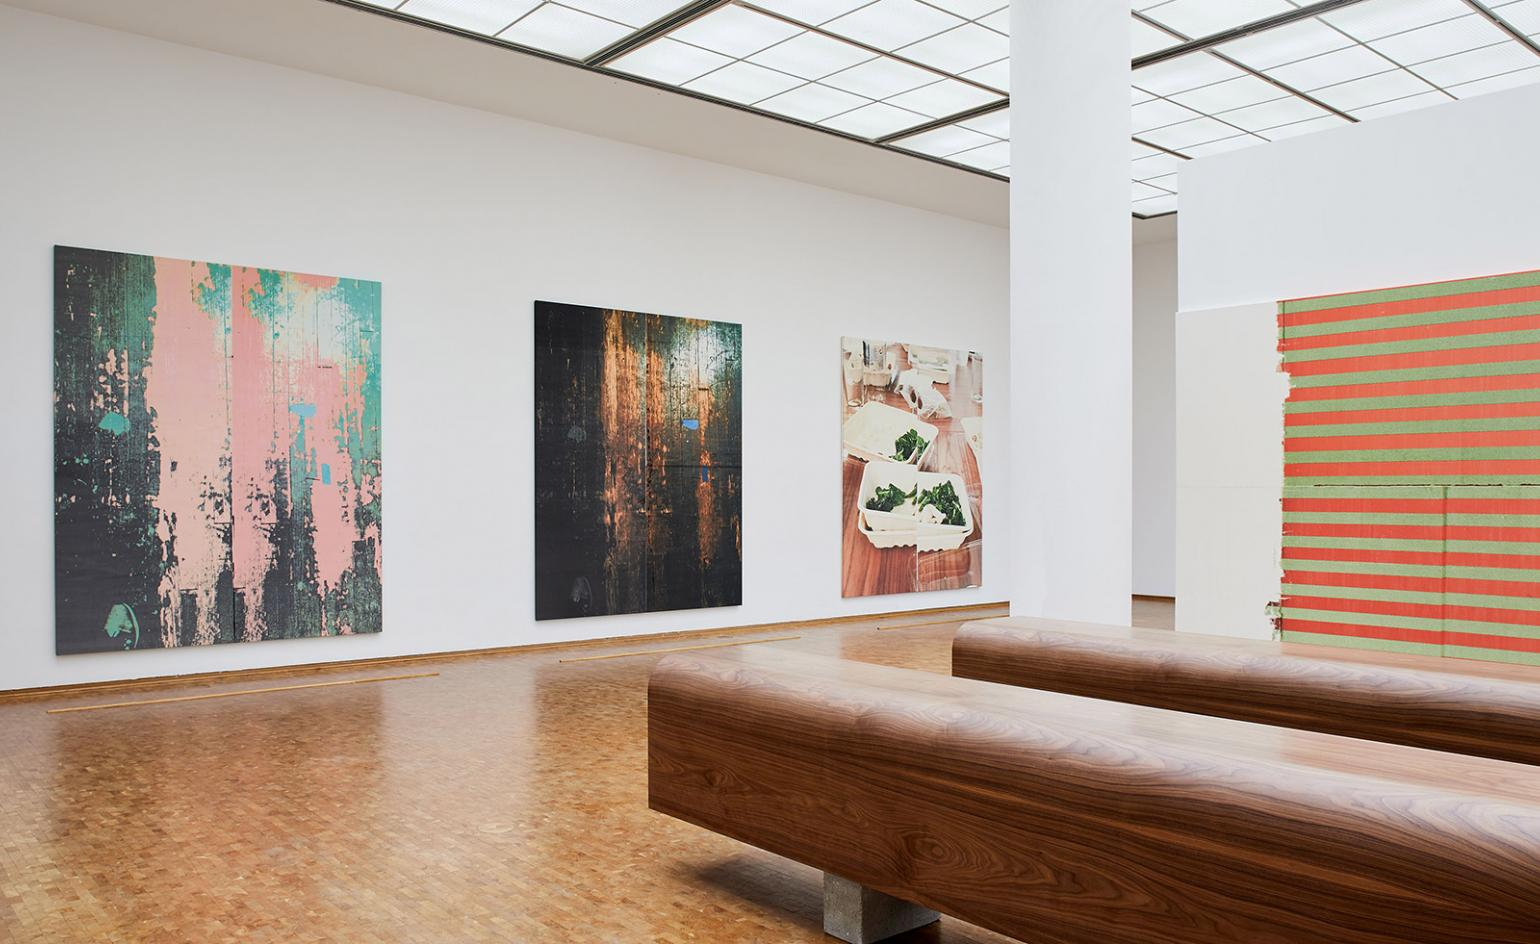 Wade Guyton gives painting a new edge in major Cologne museum survey